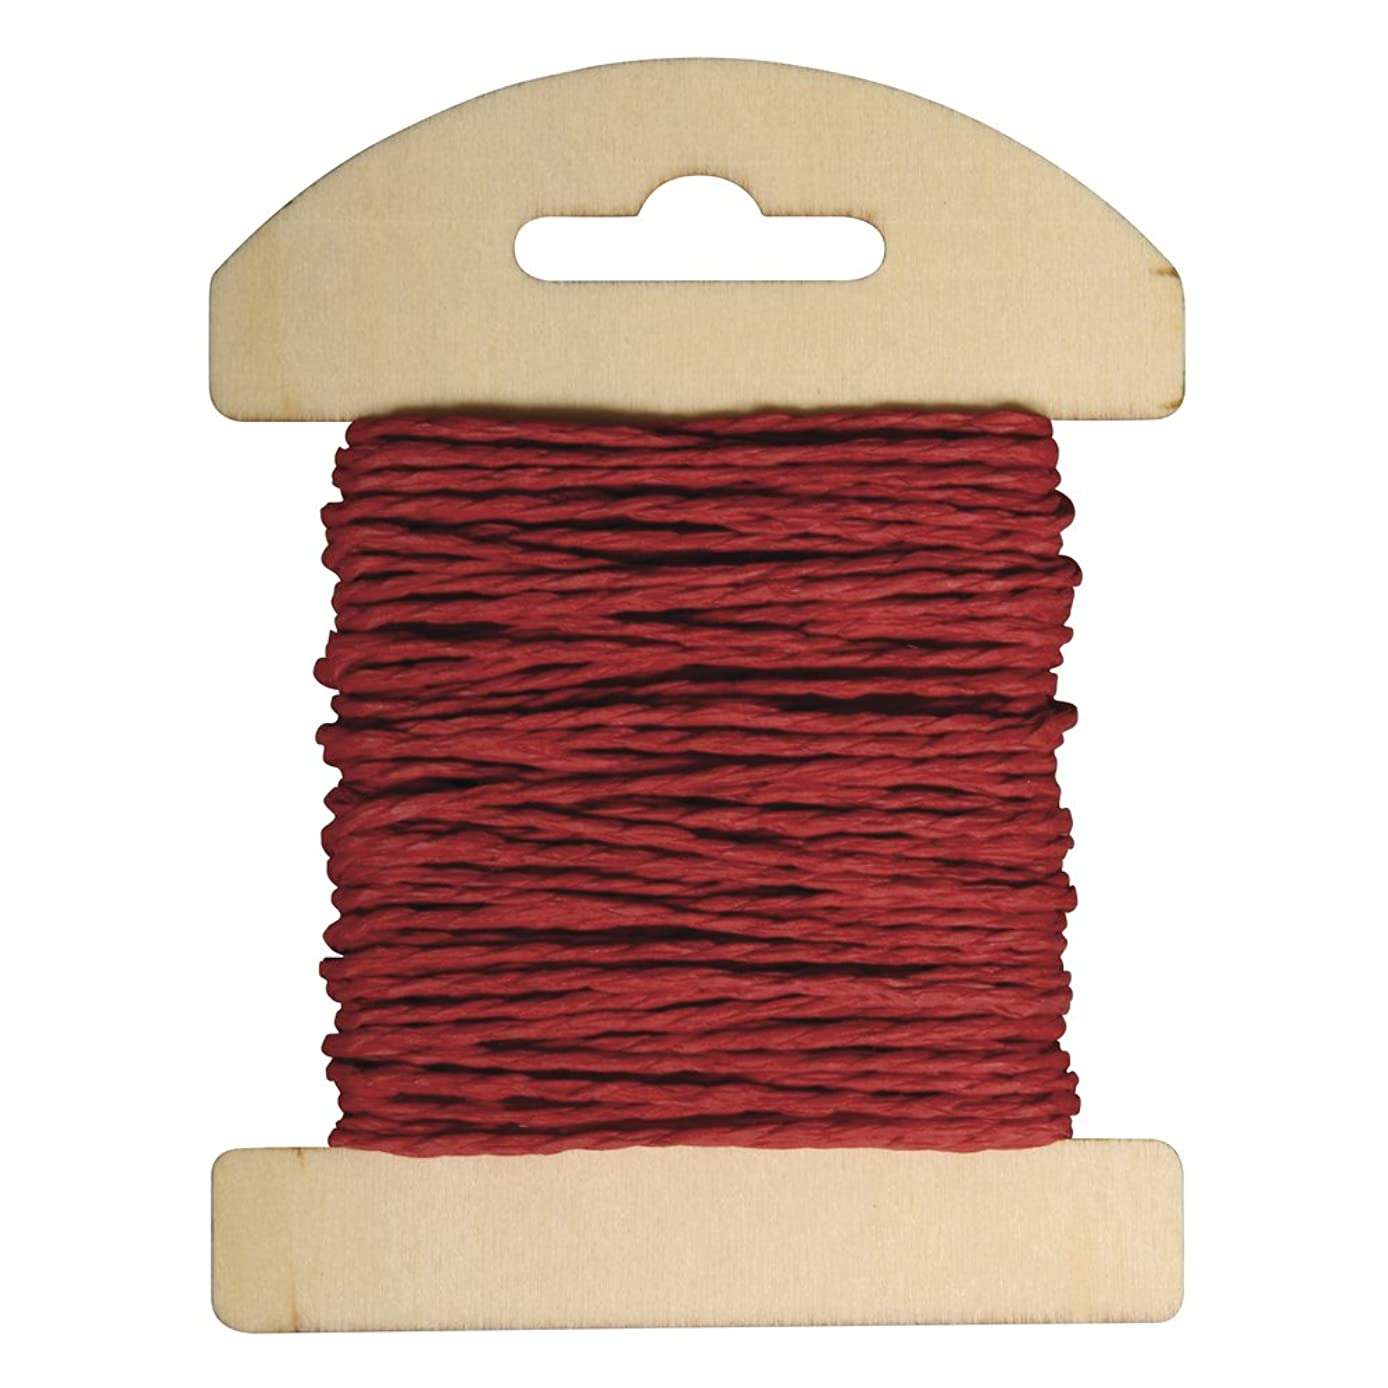 RAYHER 55352288?1.2?mm ? ?,/Wood Card Paper Cord, 10?m, Ziegelrot